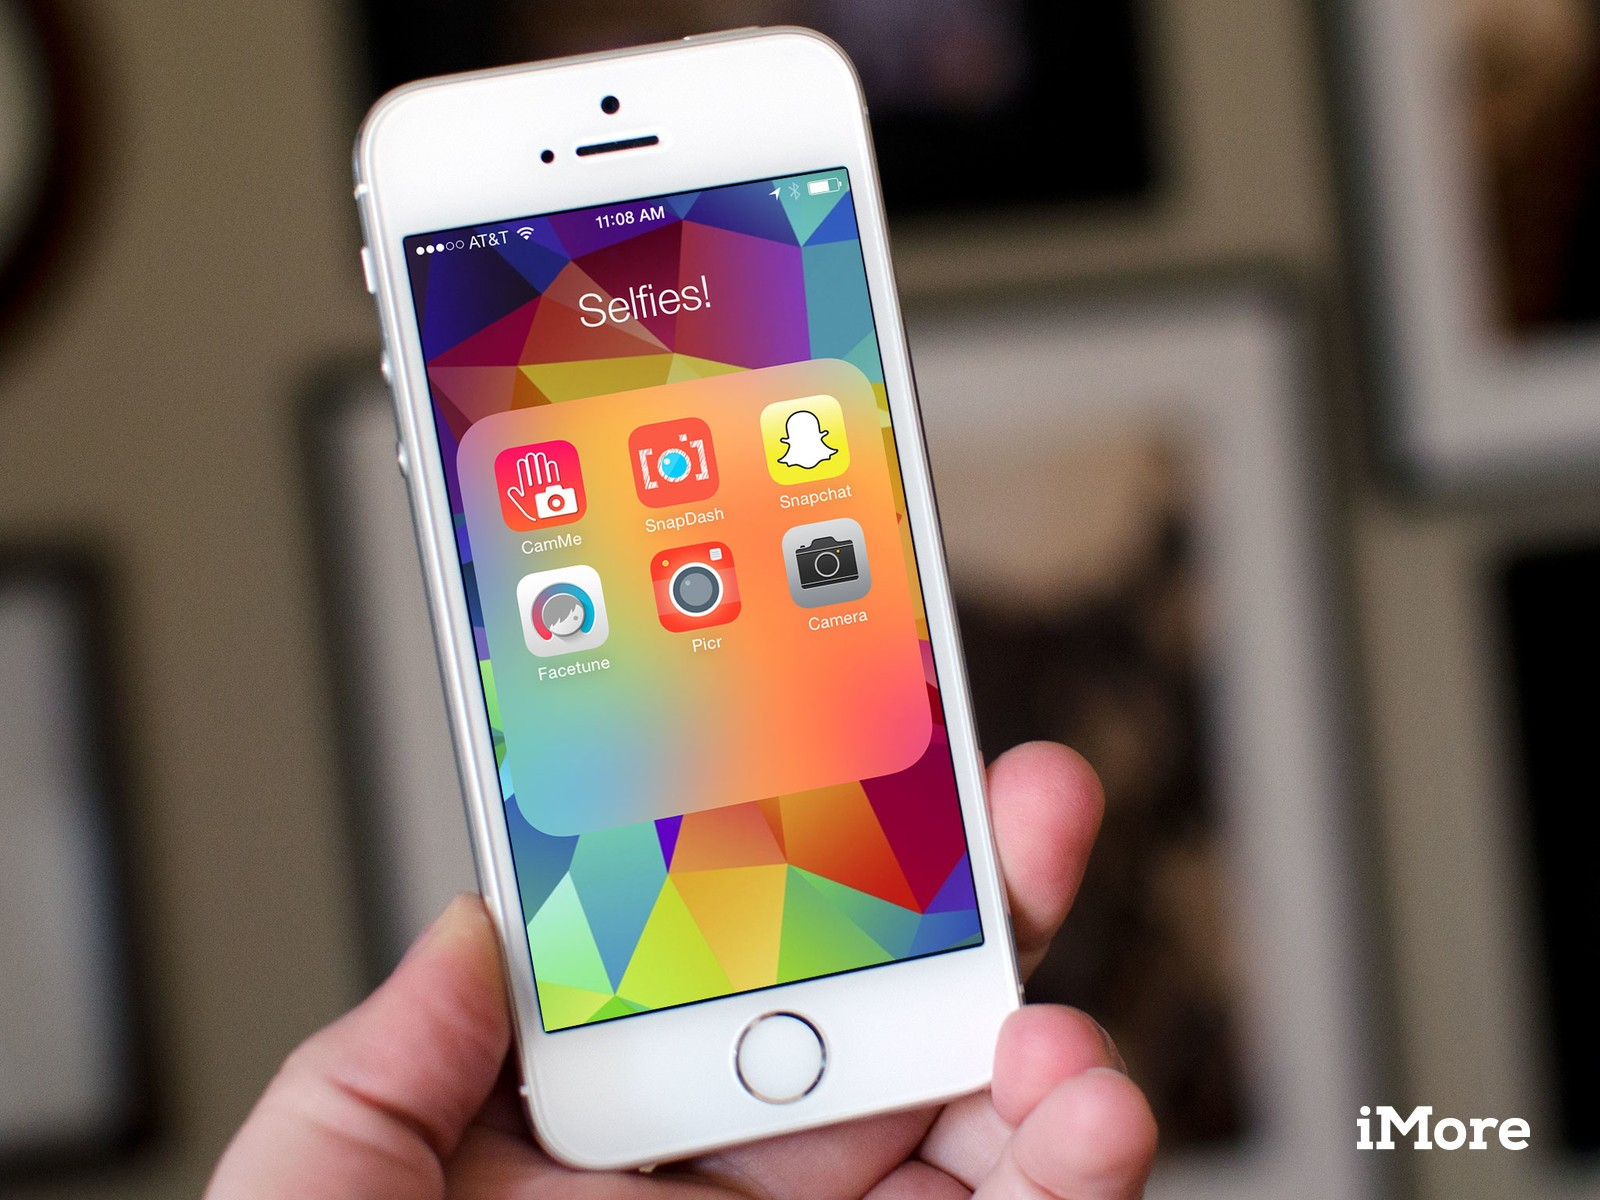 The best apps for taking great selfies on your iPhone: Picr, Snapchat, FaceTune, and more!